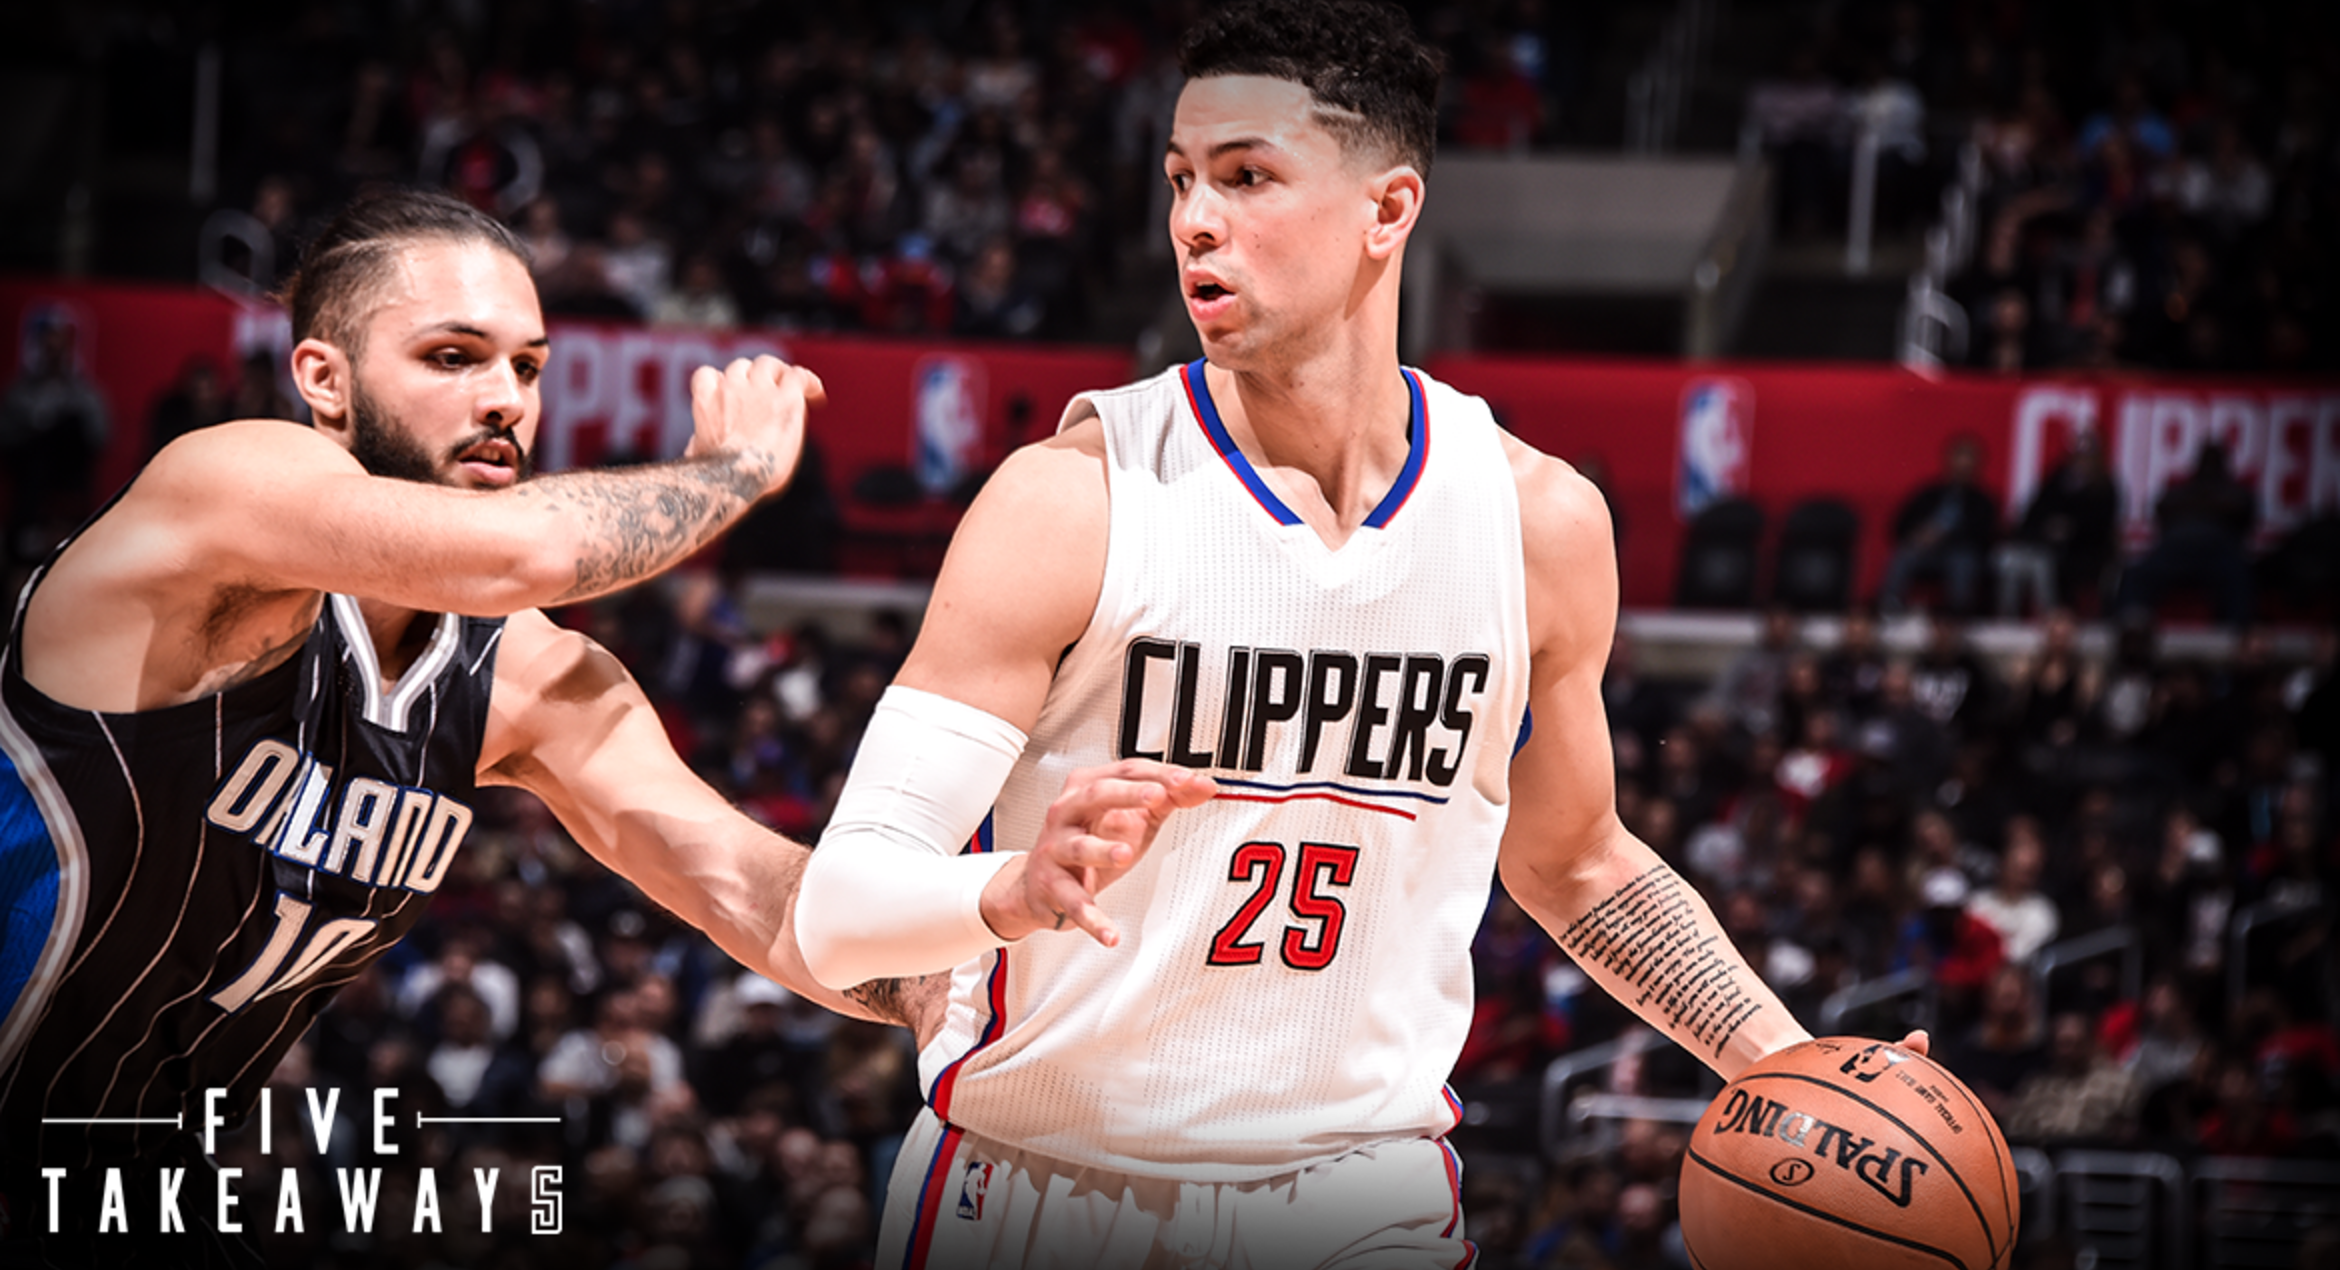 Five Takeaways: Clippers Beat Magic 105-96 For Fifth Straight Win